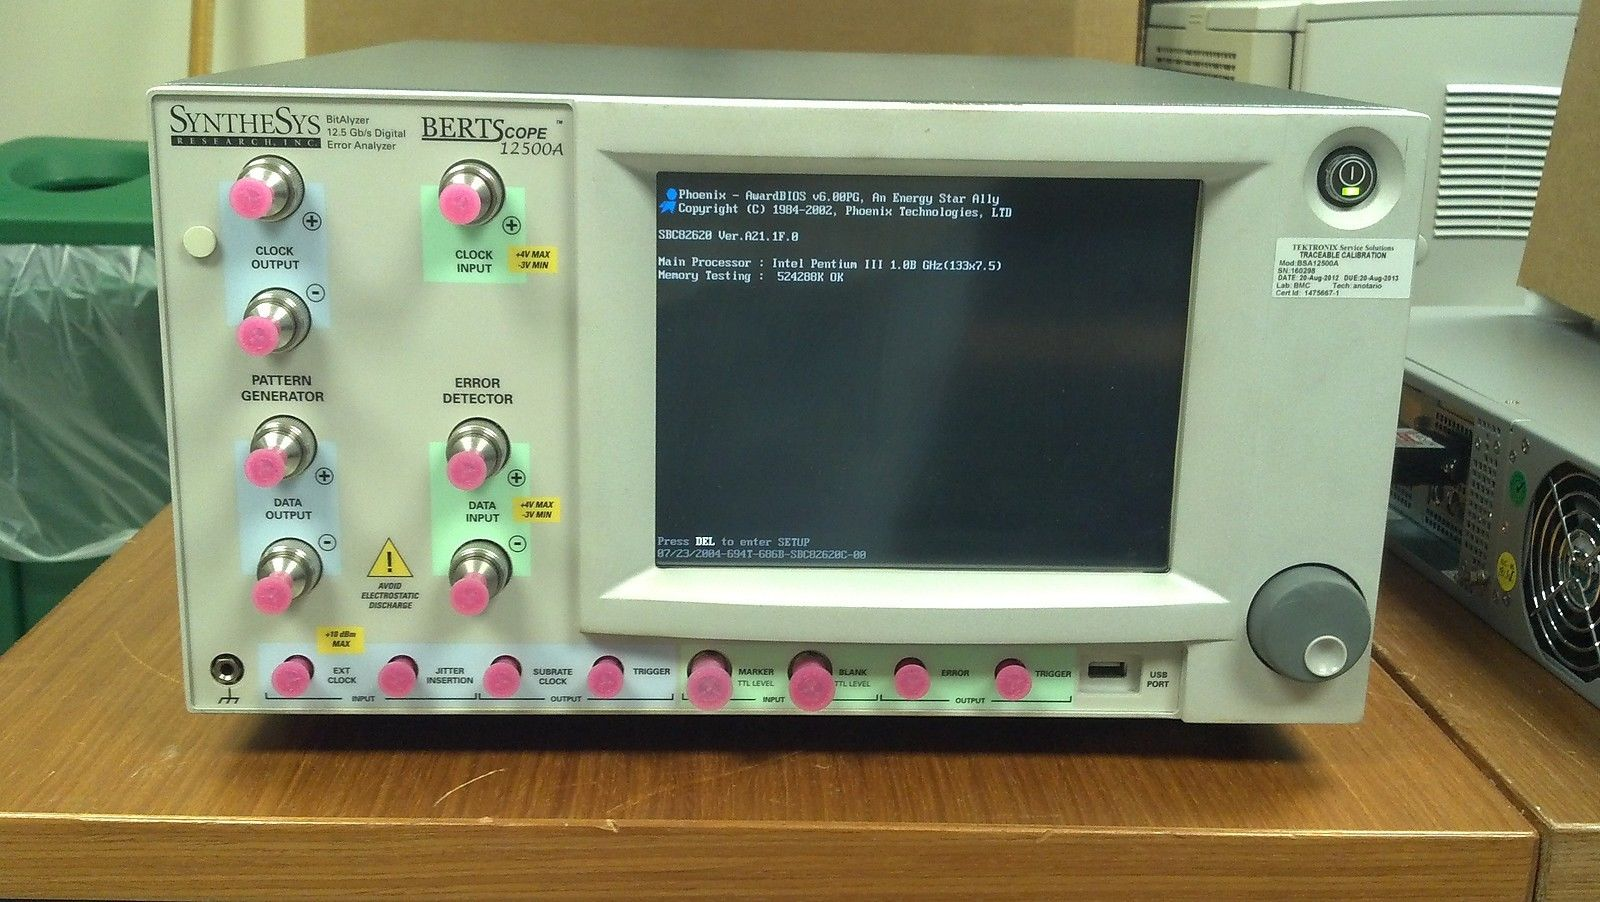 Tektronix BERTScope BSA12500A 12.5 Gb/s